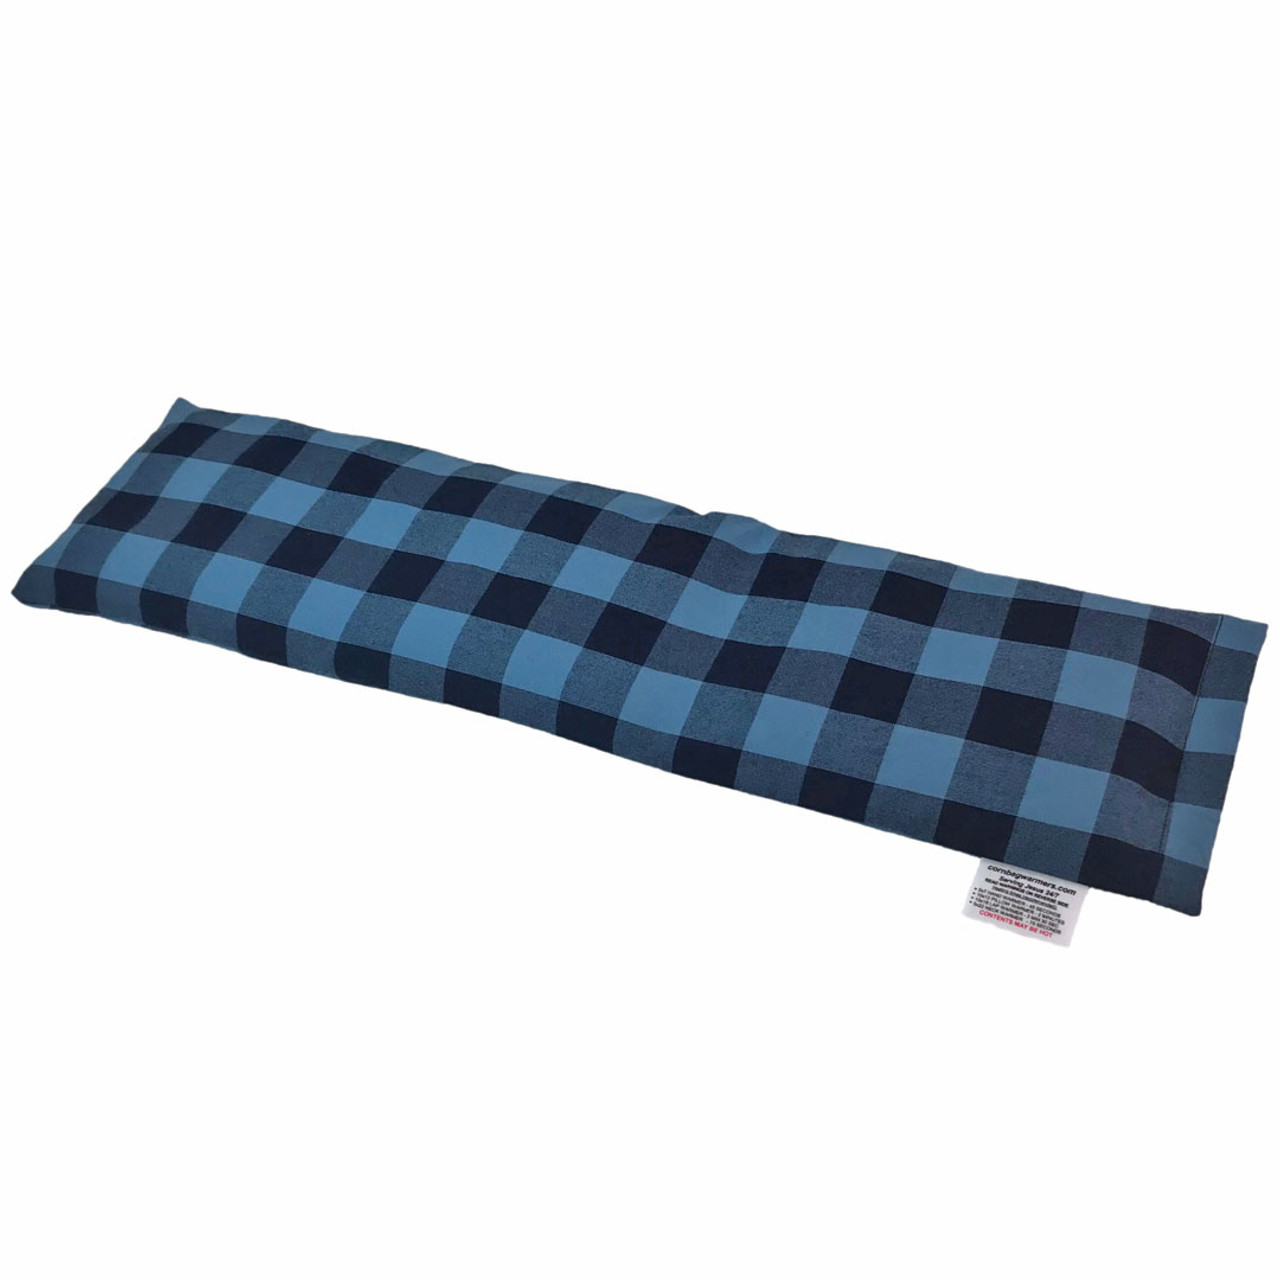 Light Blue & Black Plaid Neck Warmer Corn Bag Warmer - for Neck Pain. Beautiful!